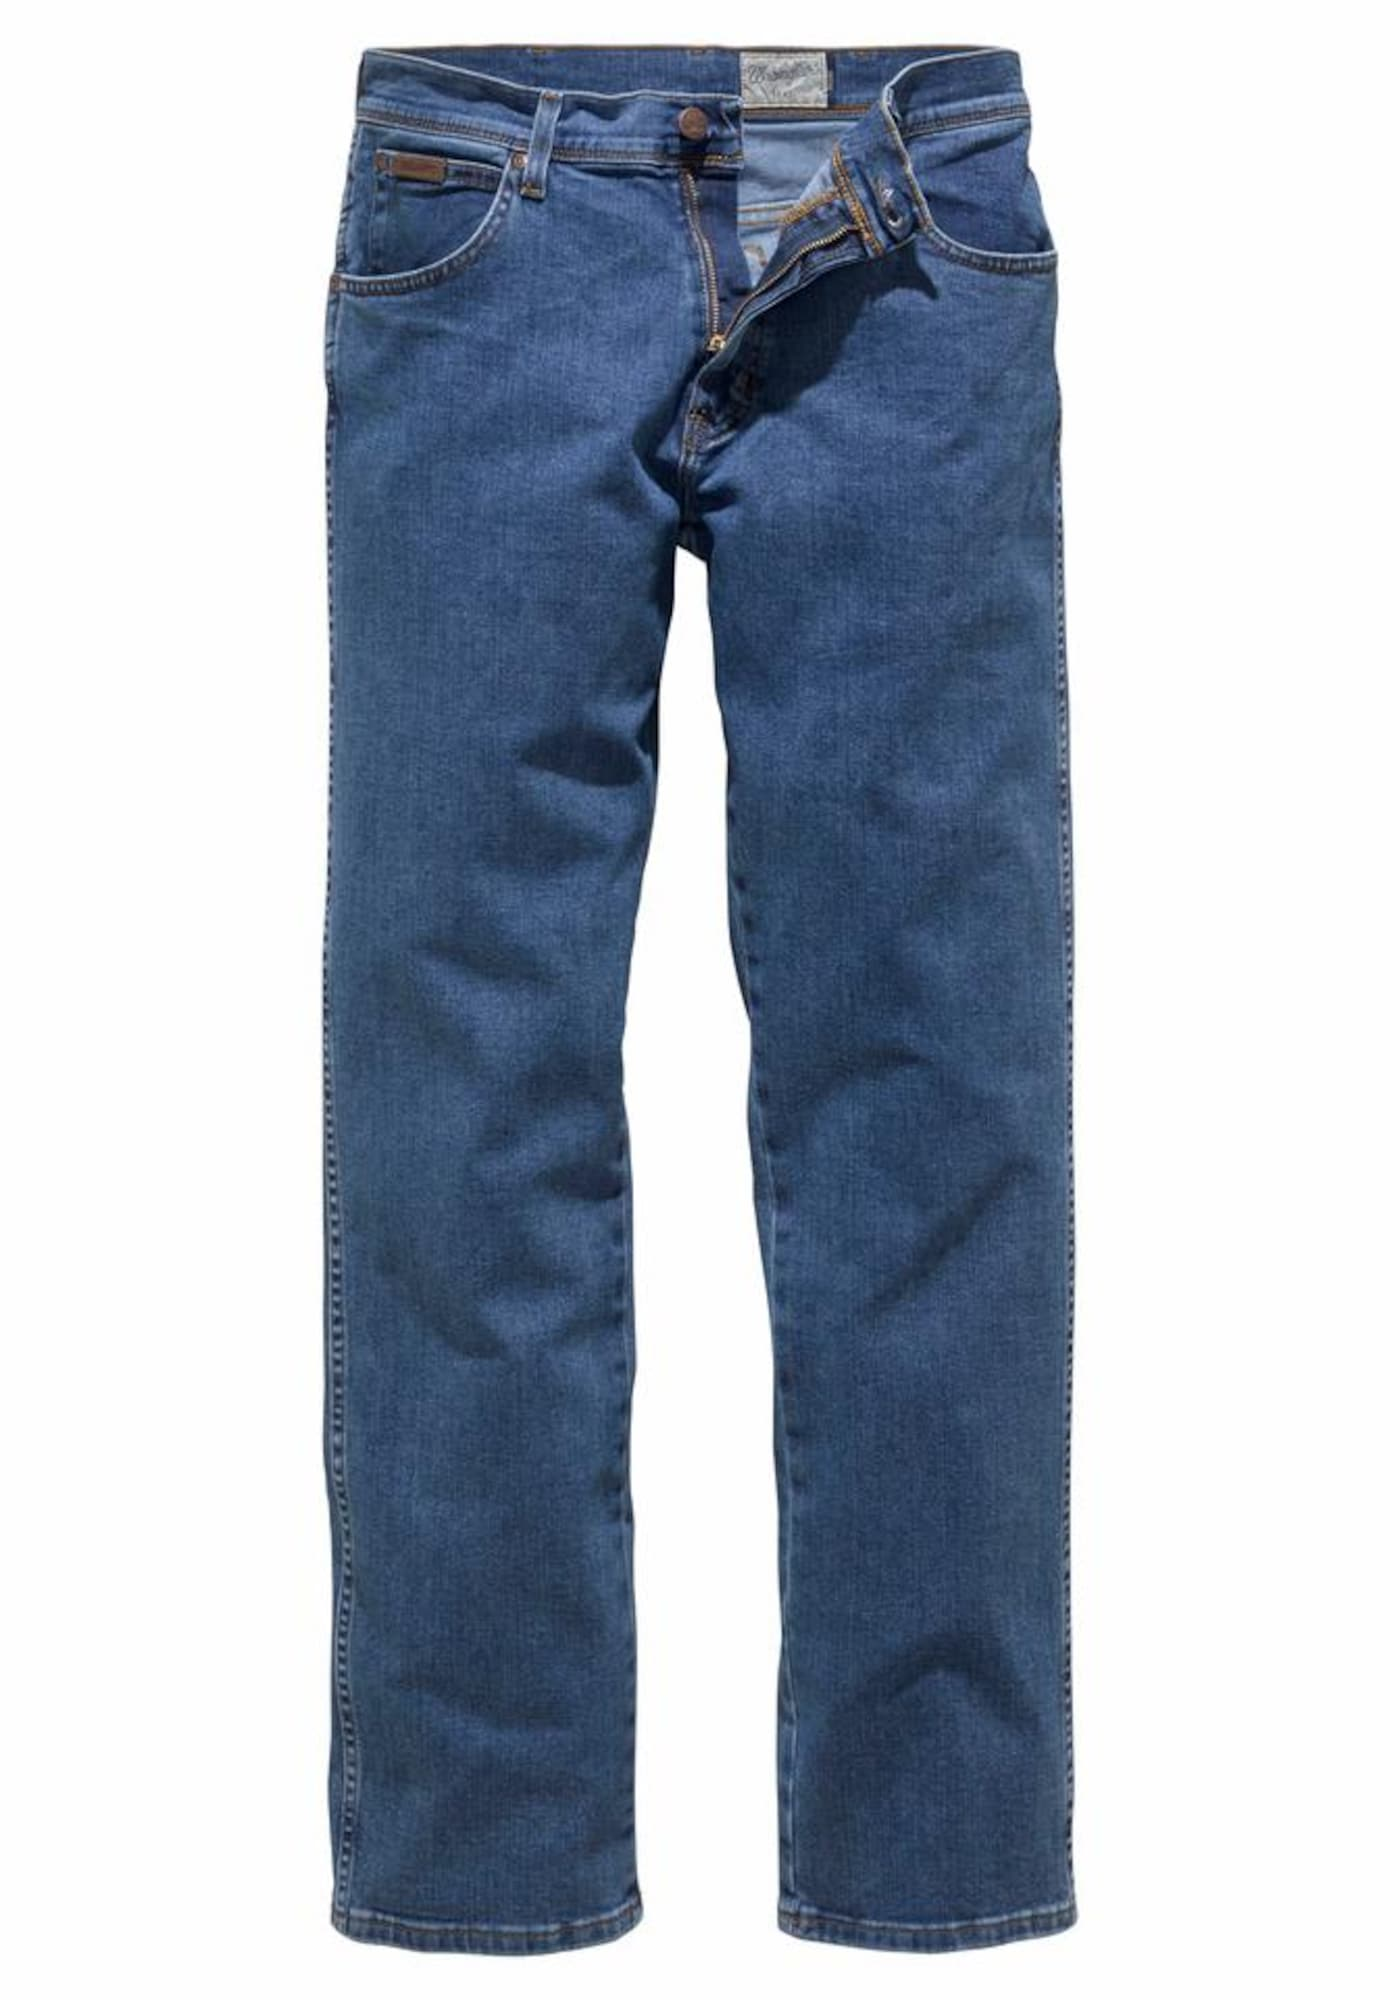 WRANGLER Heren Jeans Texas Stretch blauw